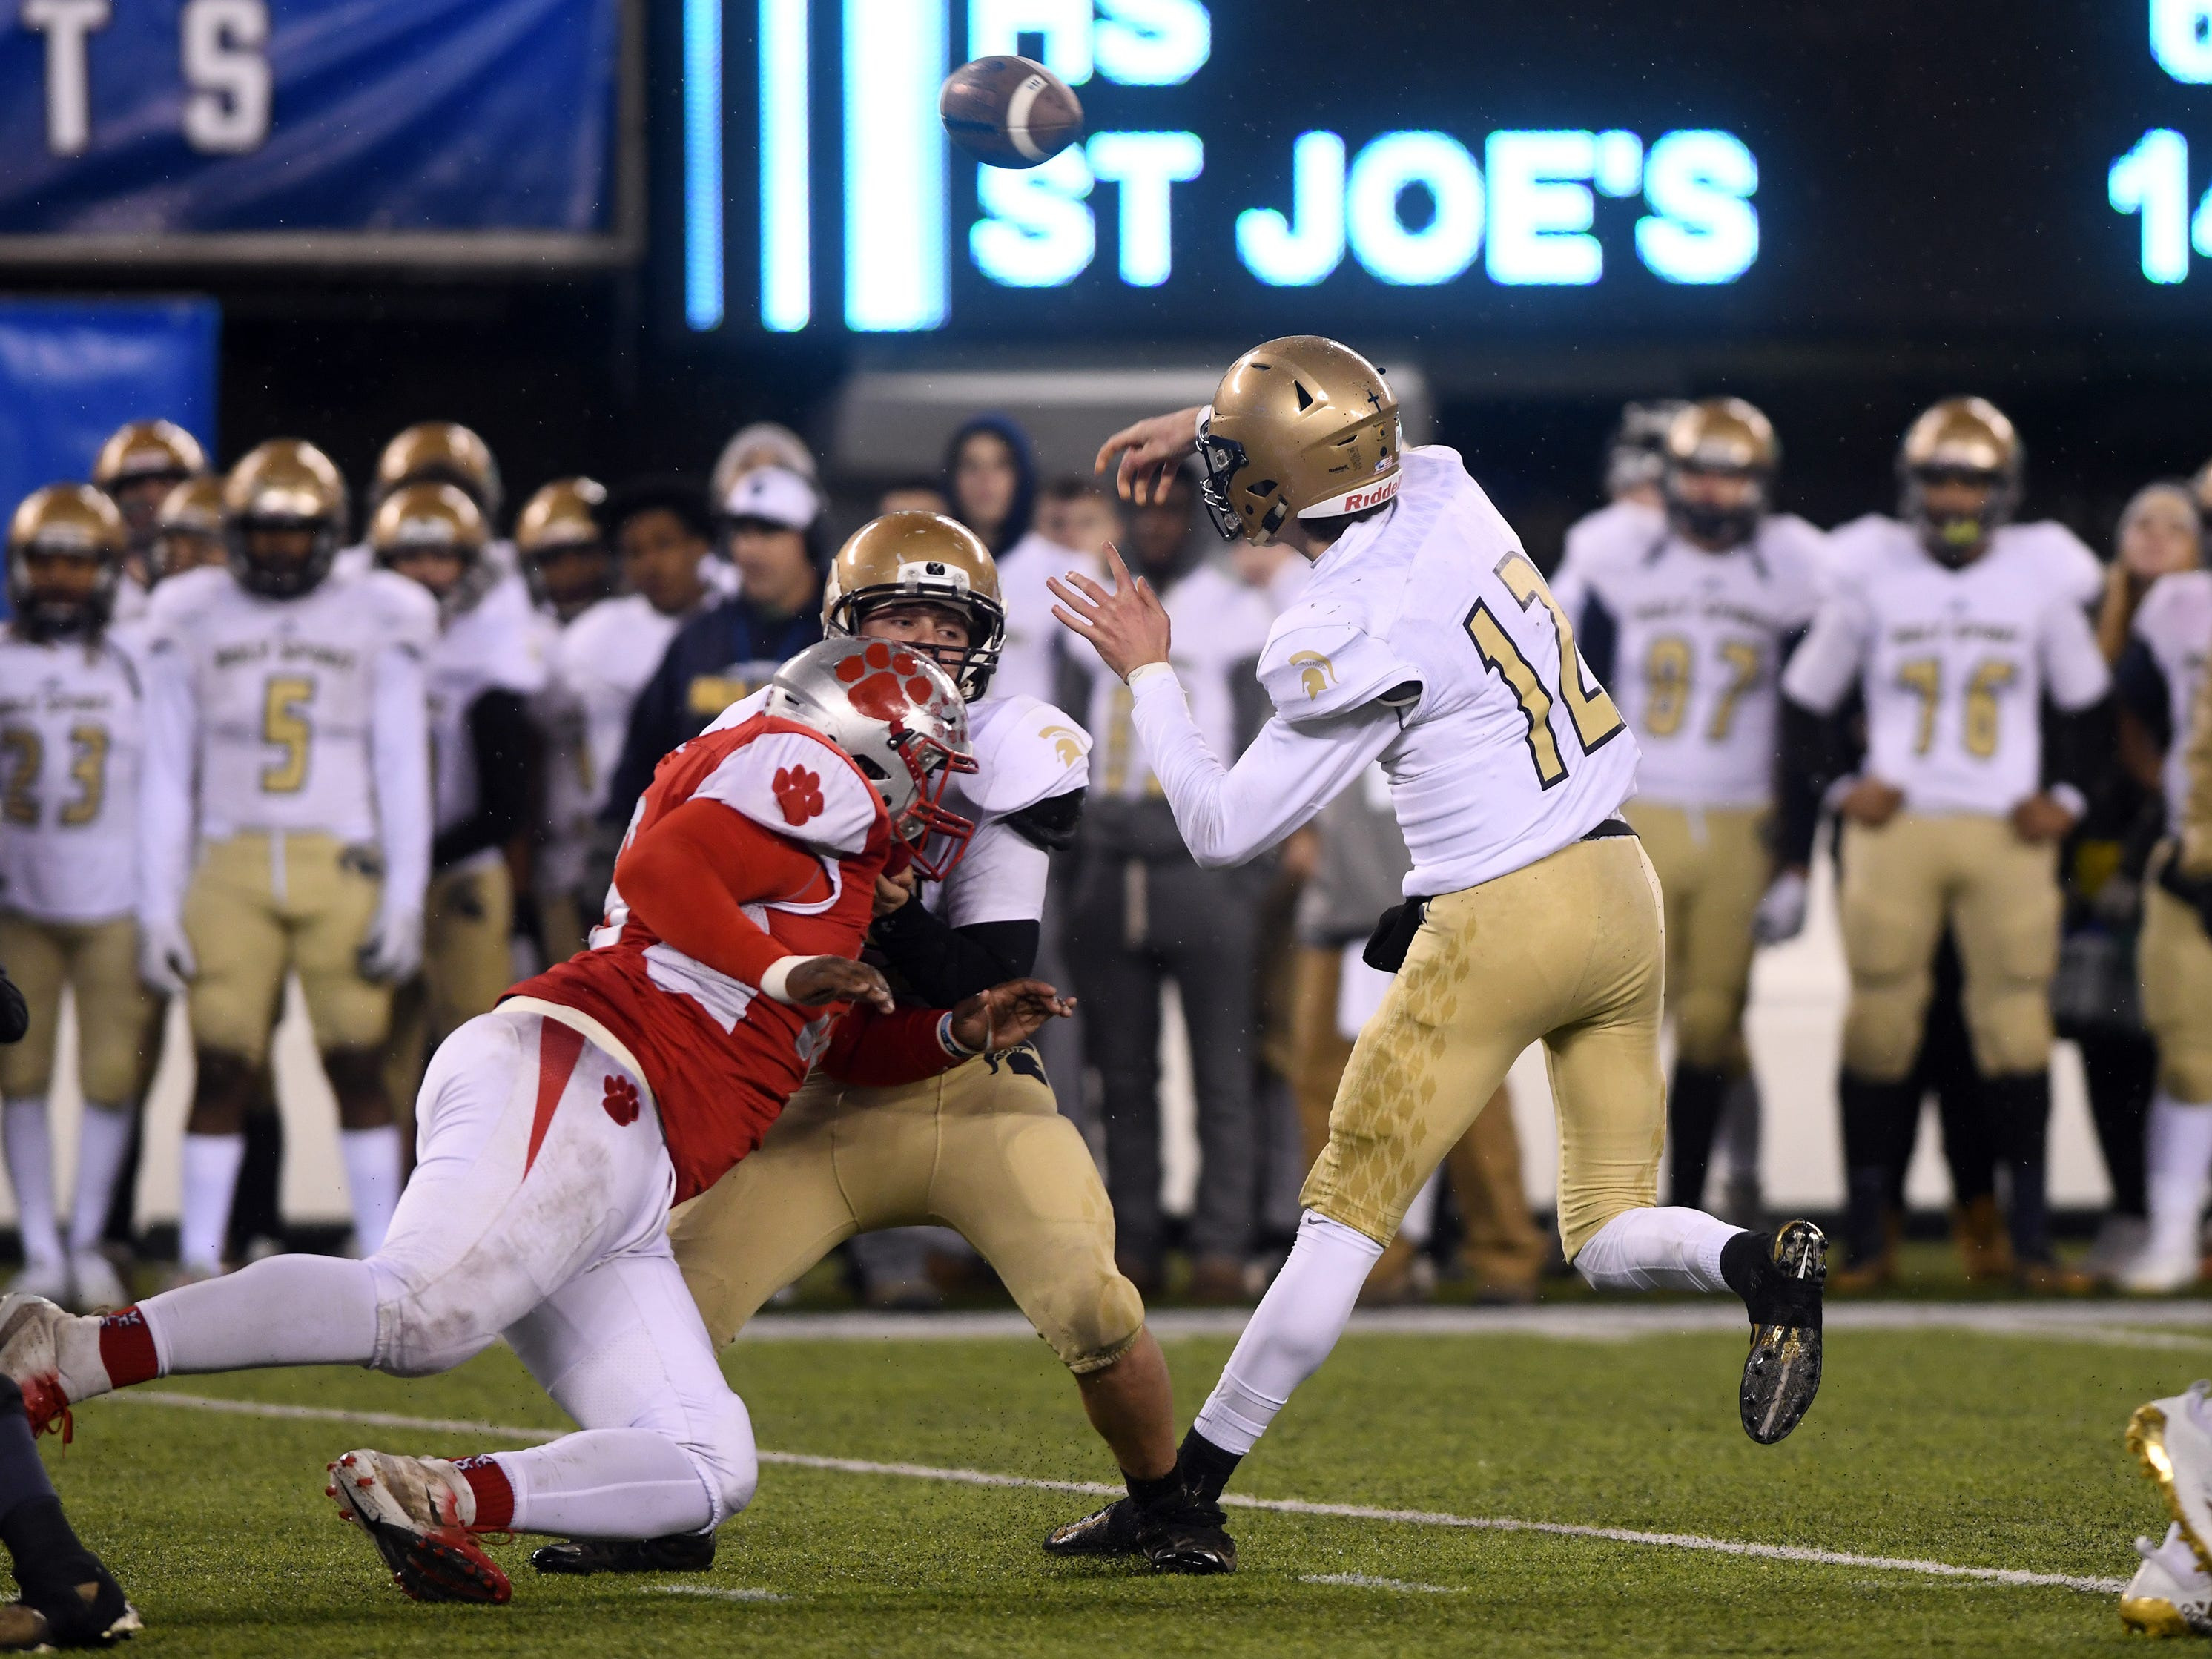 Holy Spirit's QB, Ryan Yost throws for a completion against St. Joseph. The Wildcats defeated the Spartans, 41-22 at MetLife Stadium on Friday, November 30, 2018.